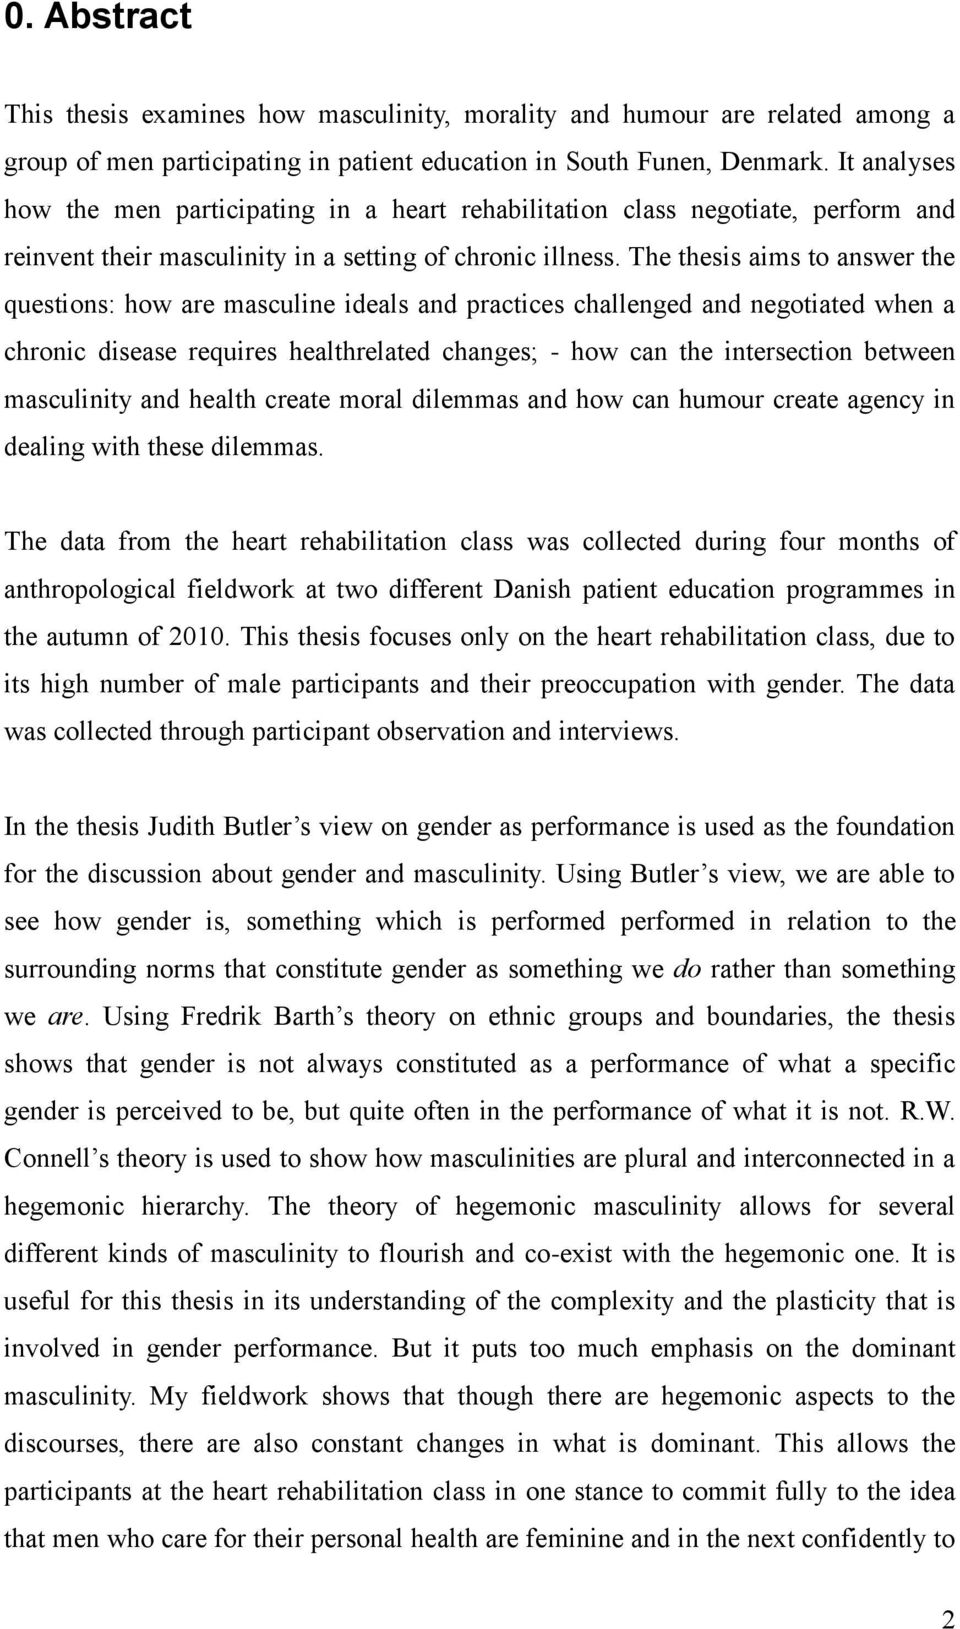 The thesis aims to answer the questions: how are masculine ideals and practices challenged and negotiated when a chronic disease requires healthrelated changes; - how can the intersection between